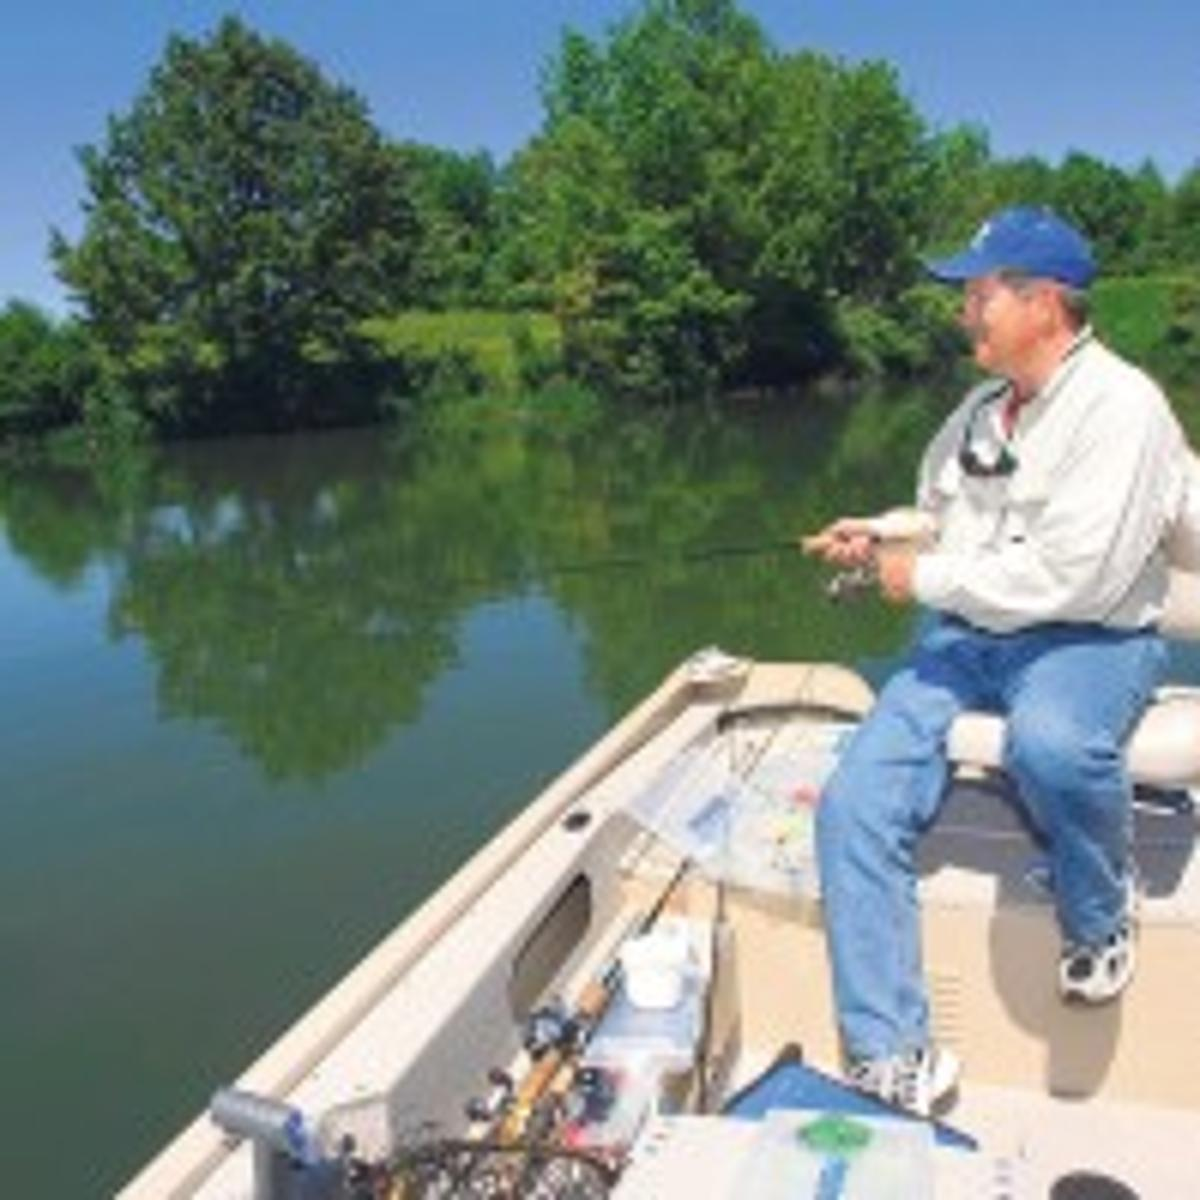 Central Illinois has some prime fishing opportunities